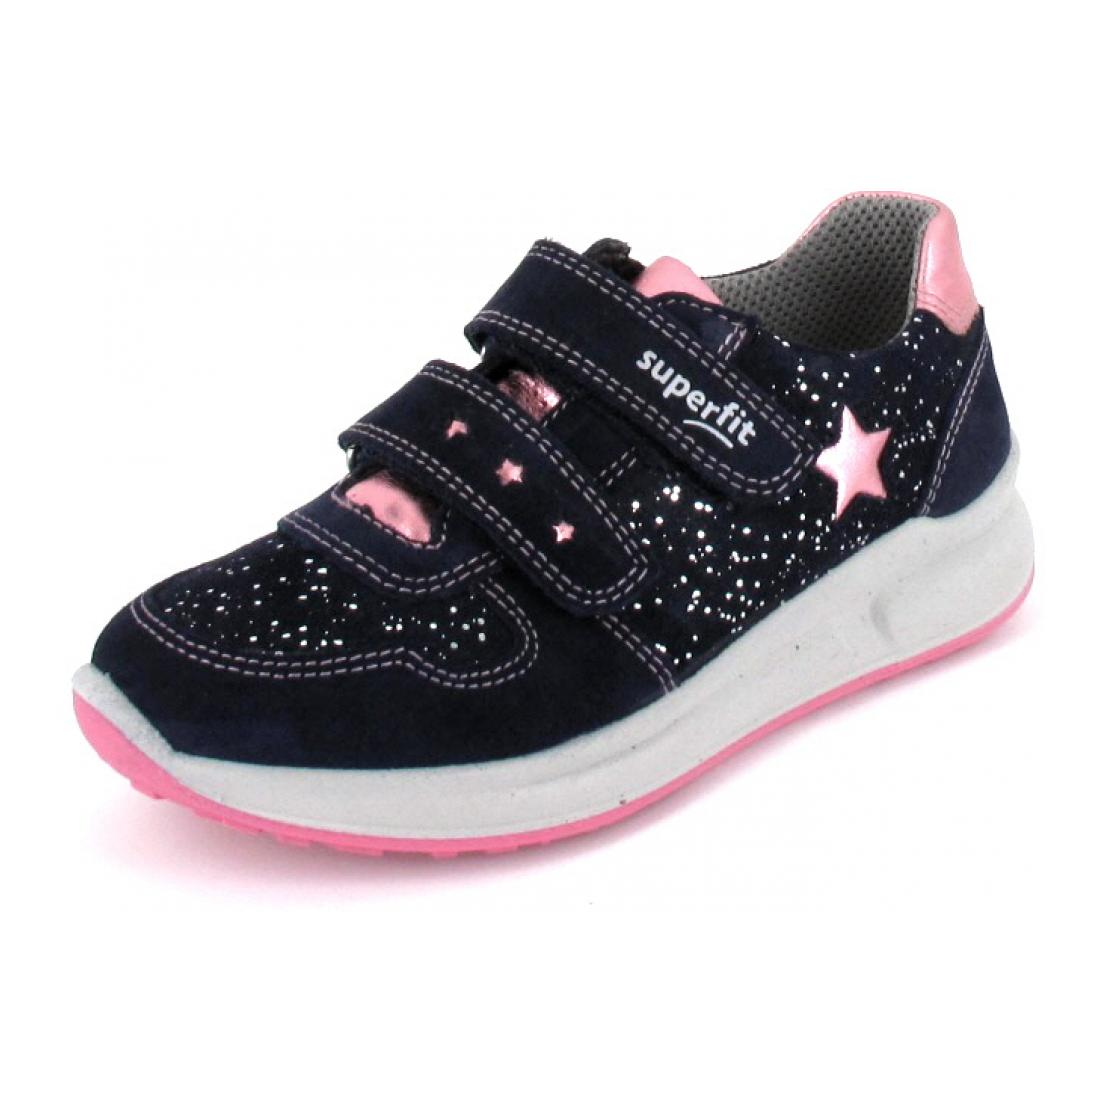 Superfit Klettschuh Merida